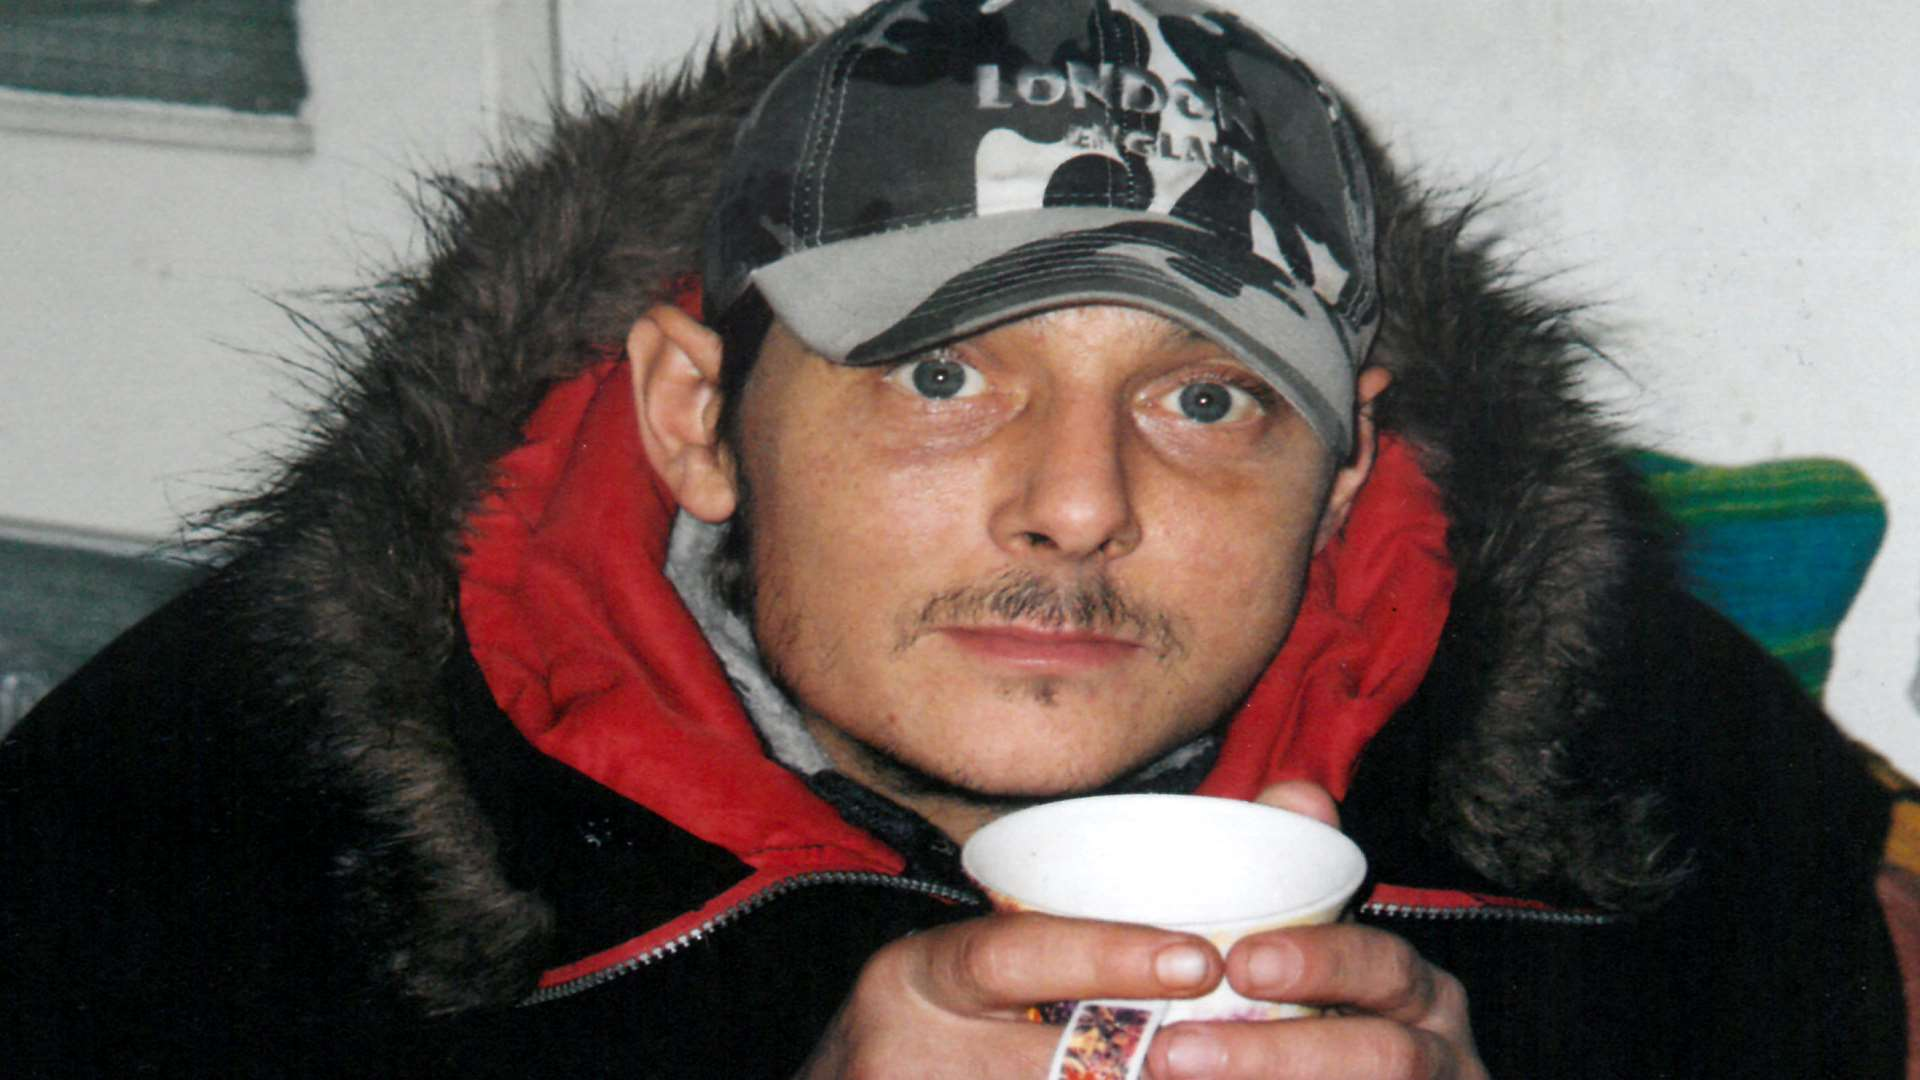 Homeless David Wilkes died in hospital days after being attacked in a Canterbury park